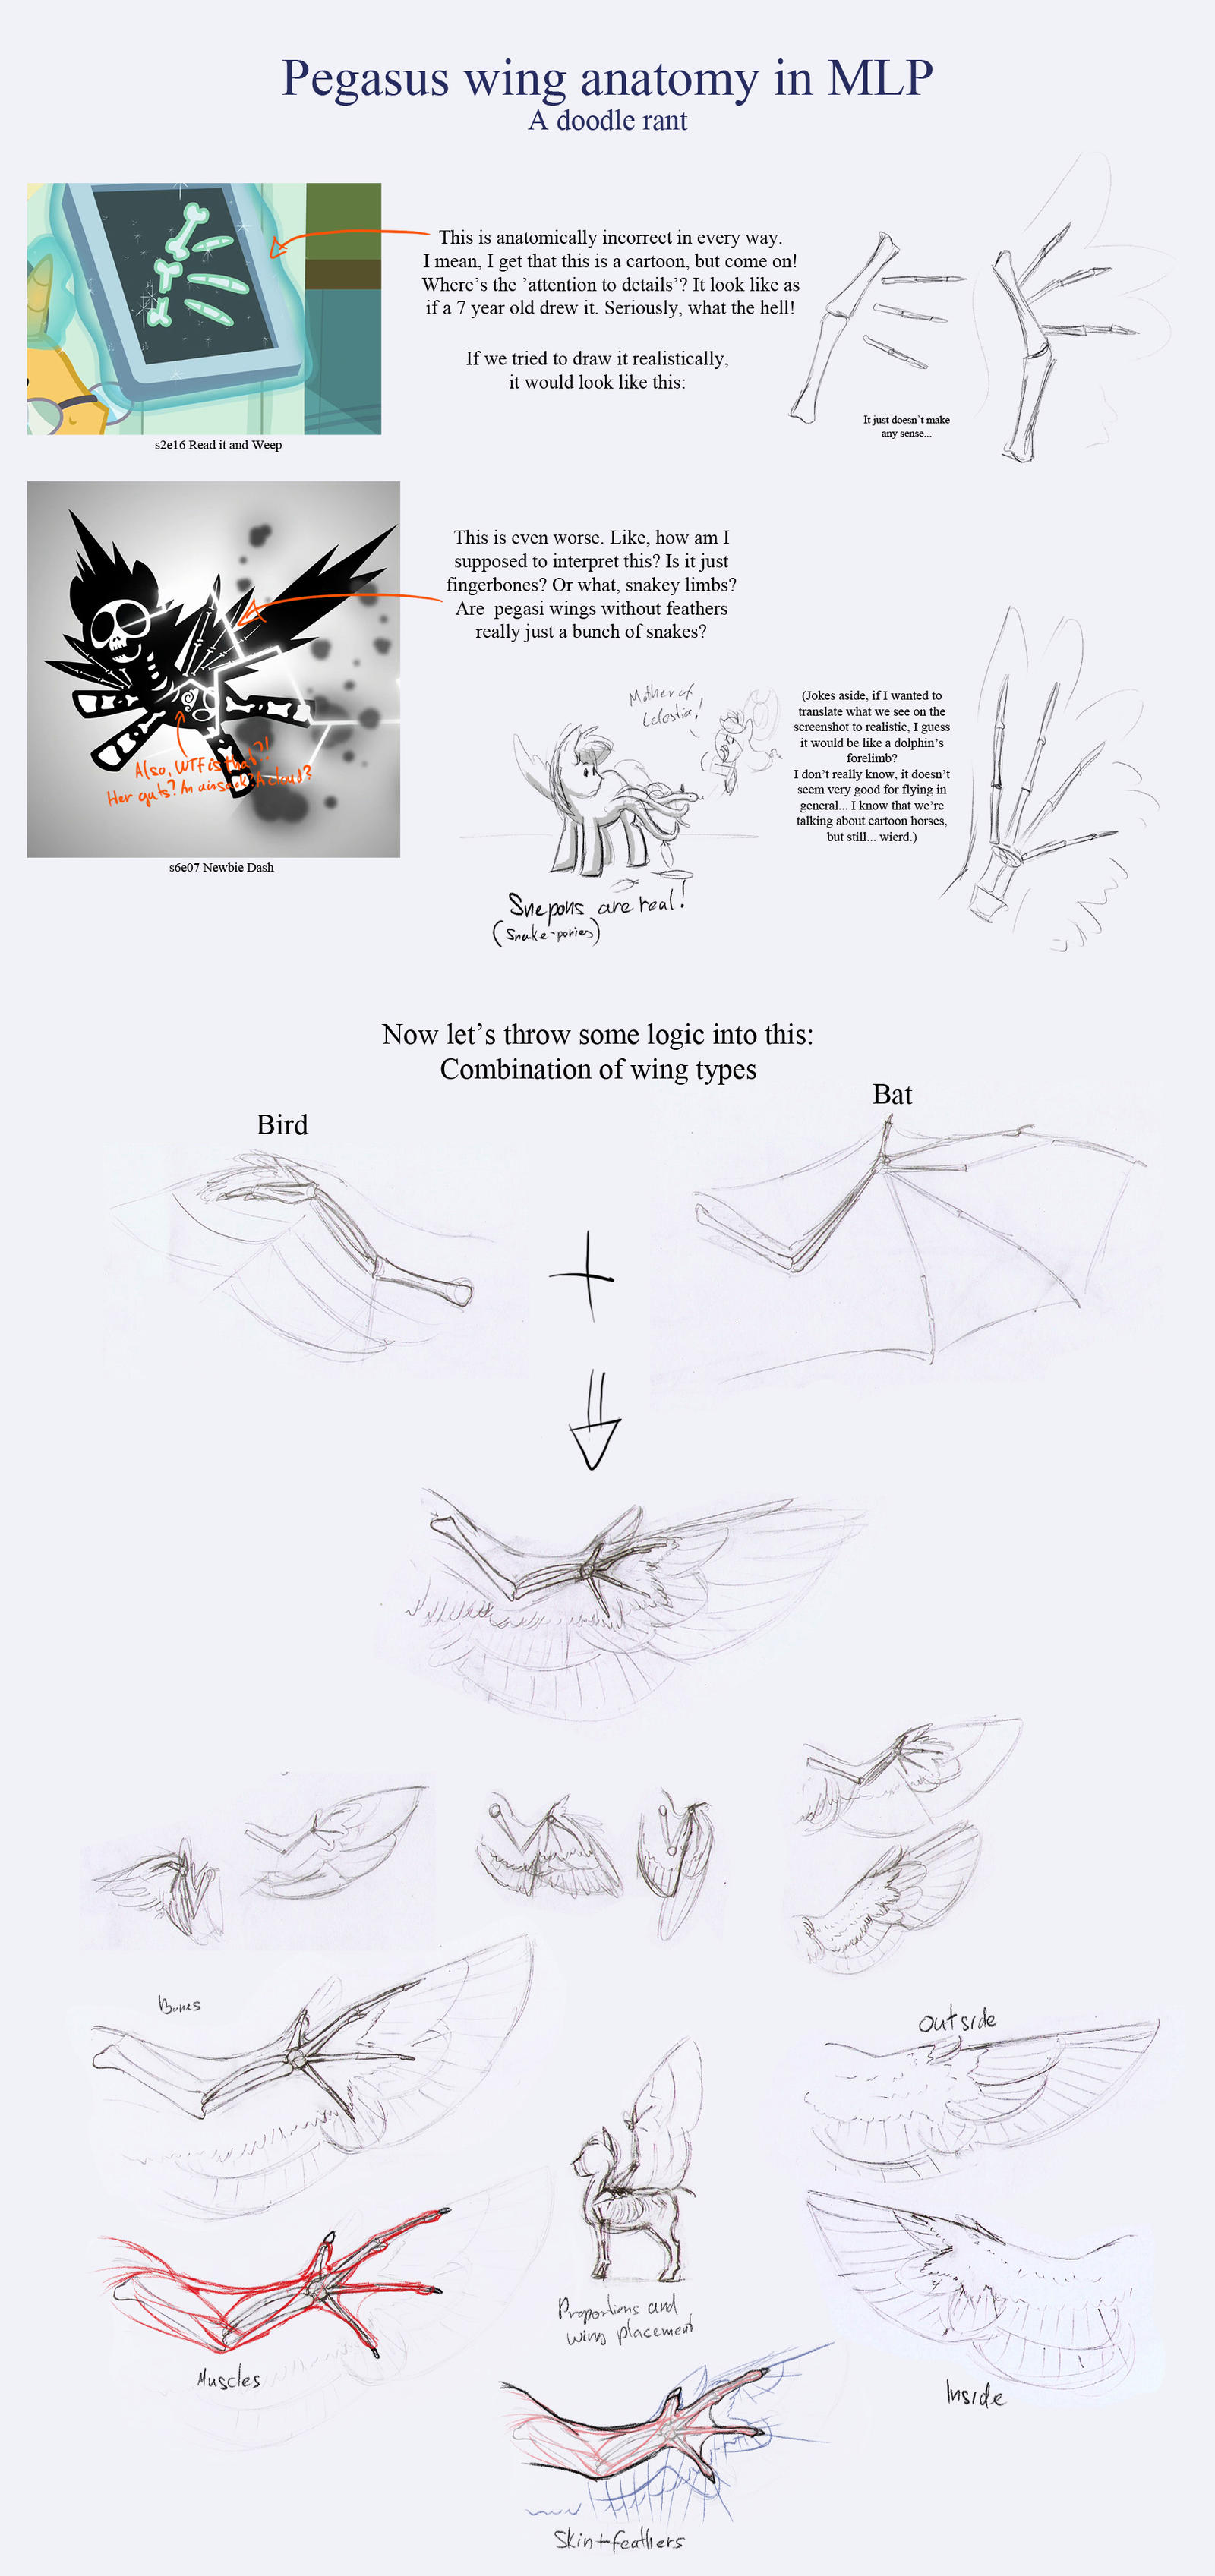 Doodle rant: MLP pegasus wing anatomy by TheSpectral-Wolf on DeviantArt